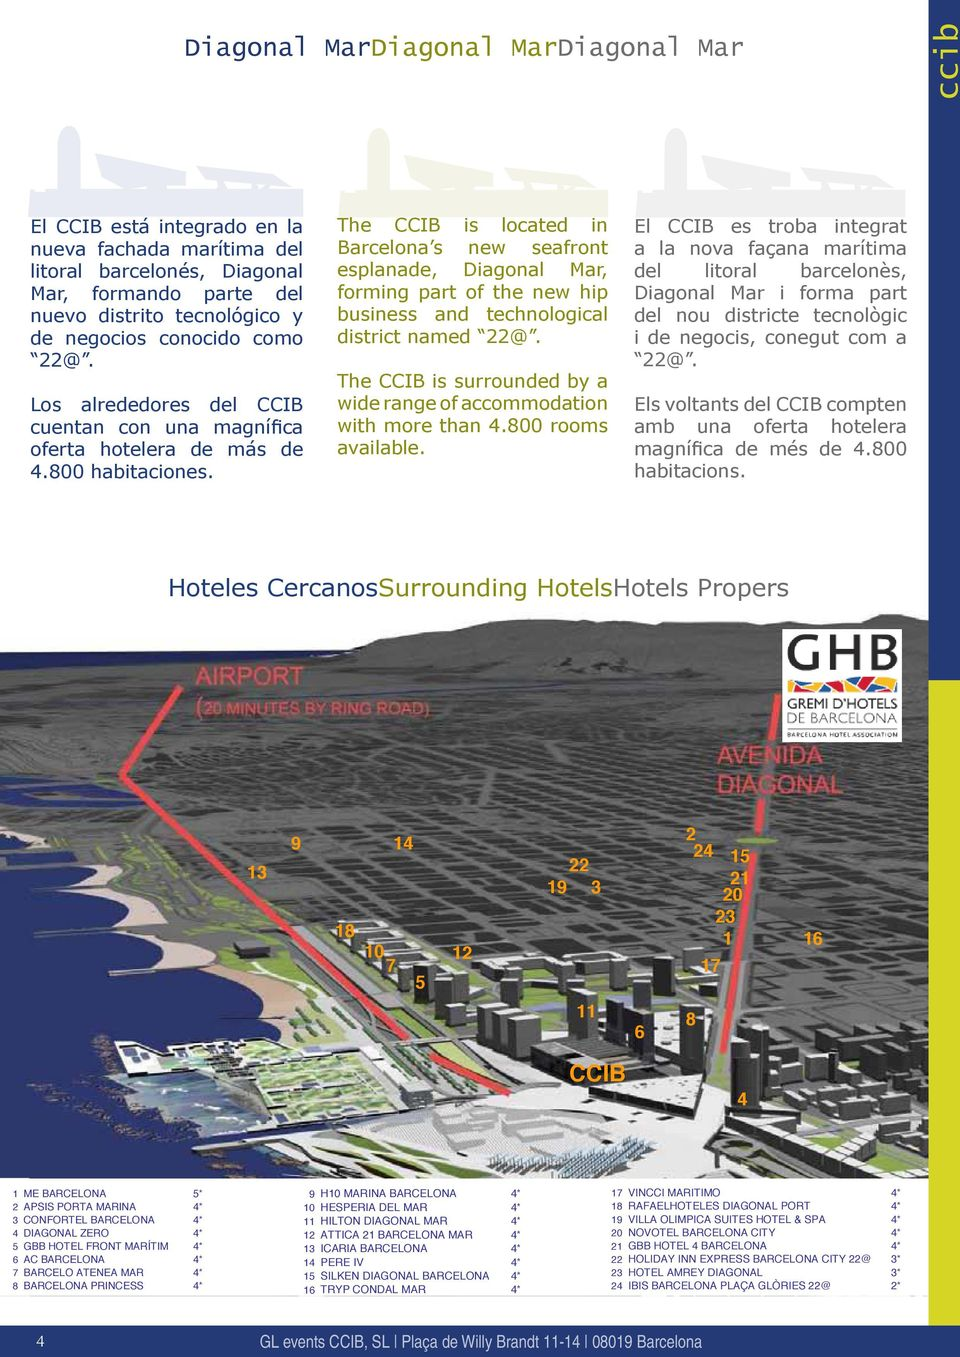 The CCIB is located in Barcelona s new seafront esplanade, Diagonal Mar, forming part of the new hip business and technological district named 22@.